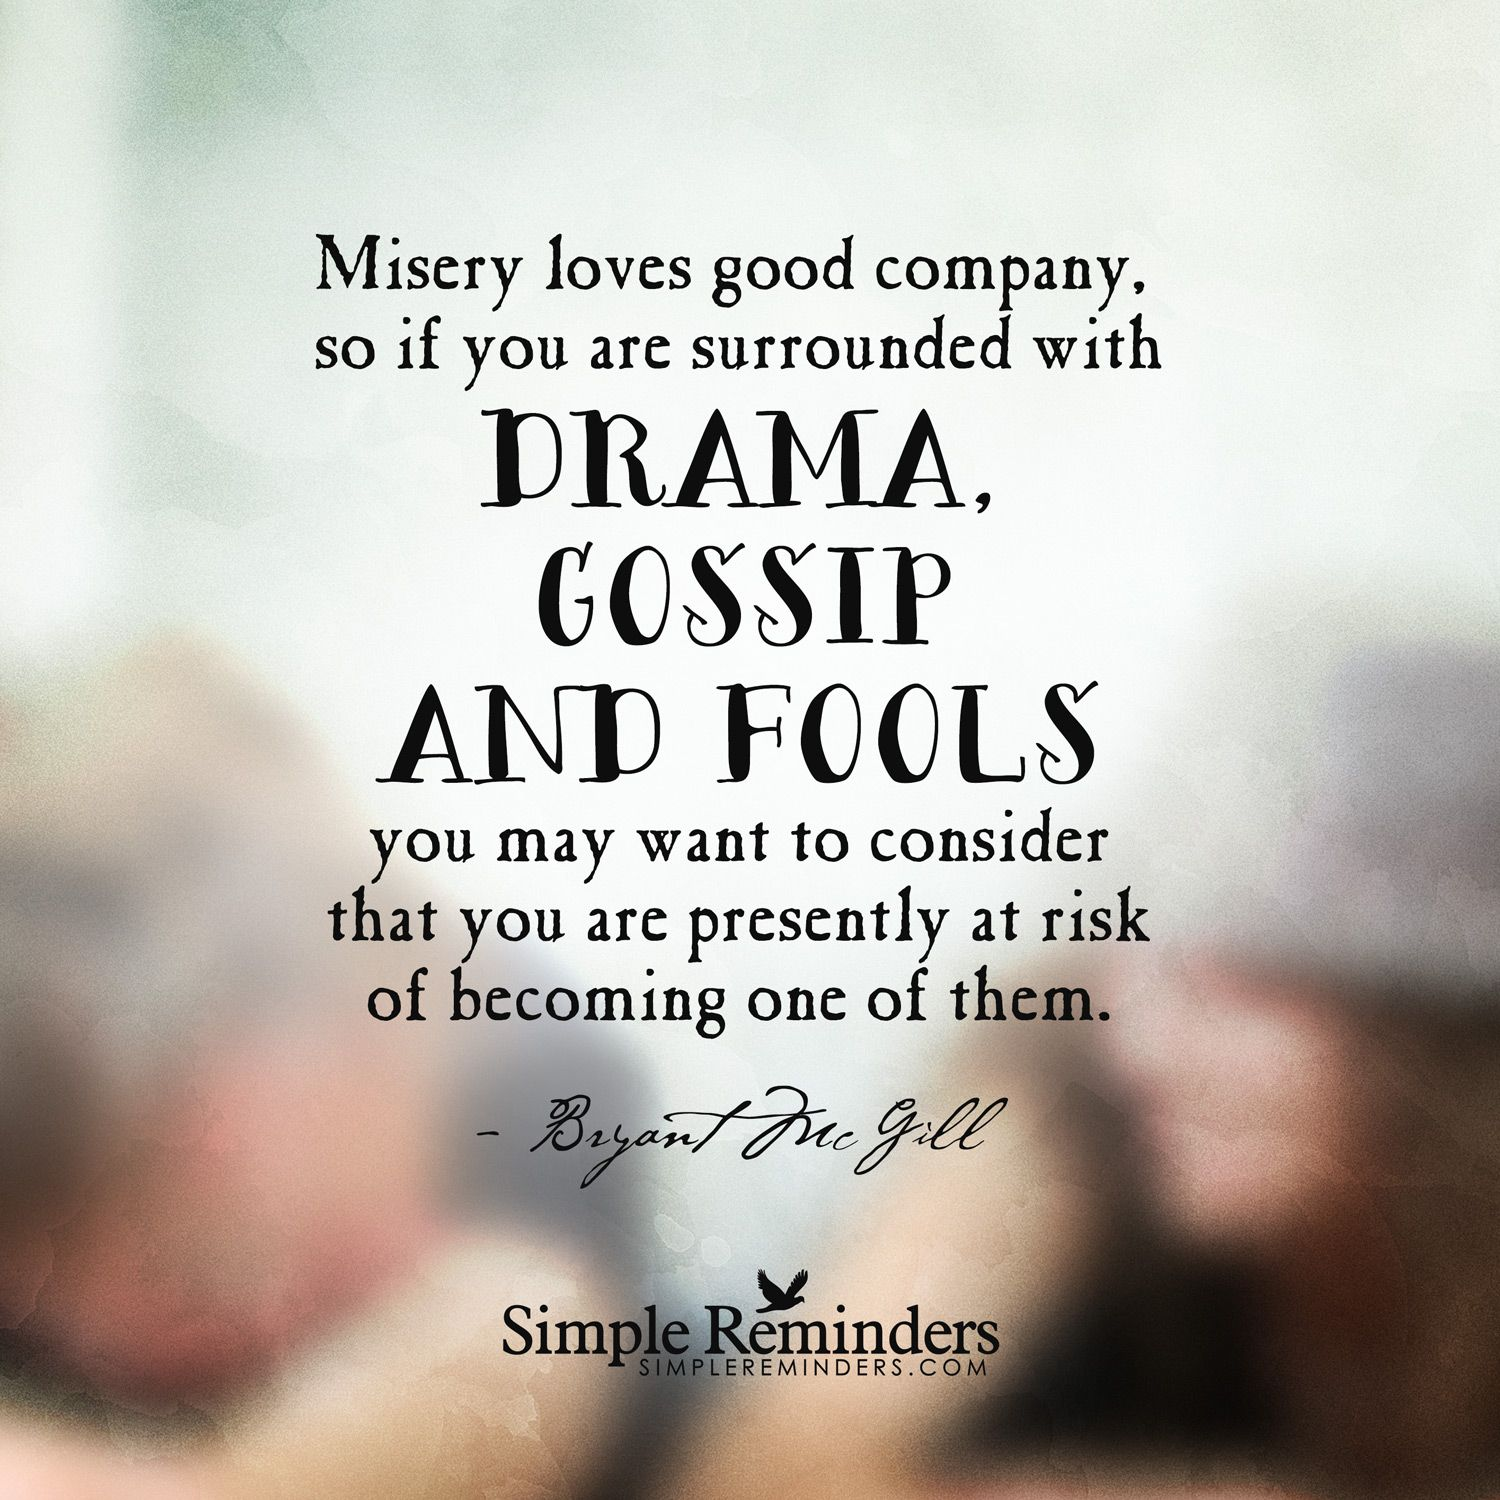 Misery Loves Company Quotes Pleasing Misery Loves Good Company So If You Are Surrounded With Drama Gos . Inspiration